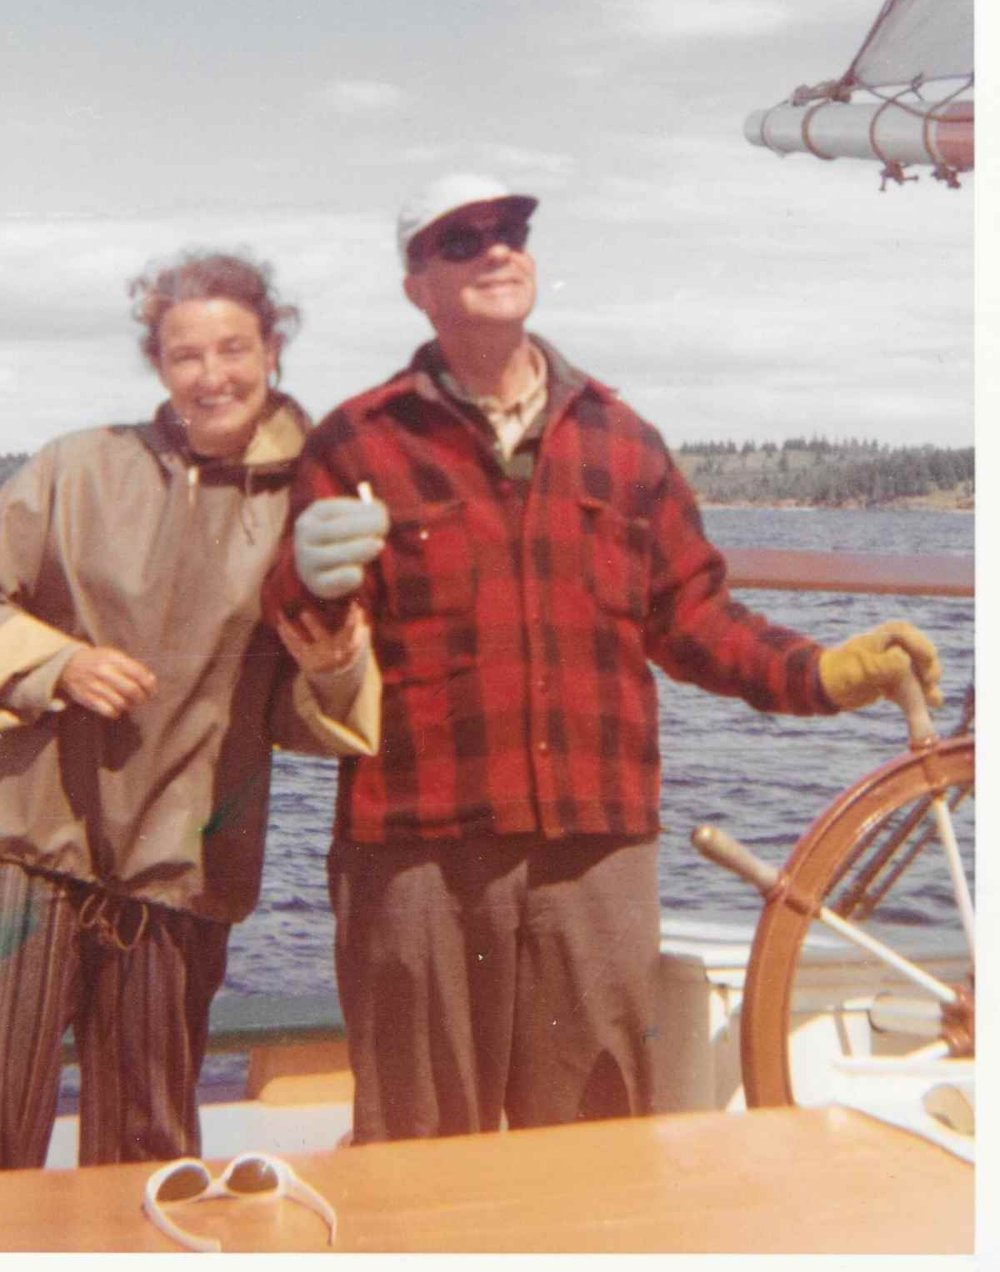 Leatha and Captain Cy aboard the STEPHEN TABOR on Blue Hill Bay, c. 1960s. Webber's Cove Boatyards. Blue Hill, Maine.